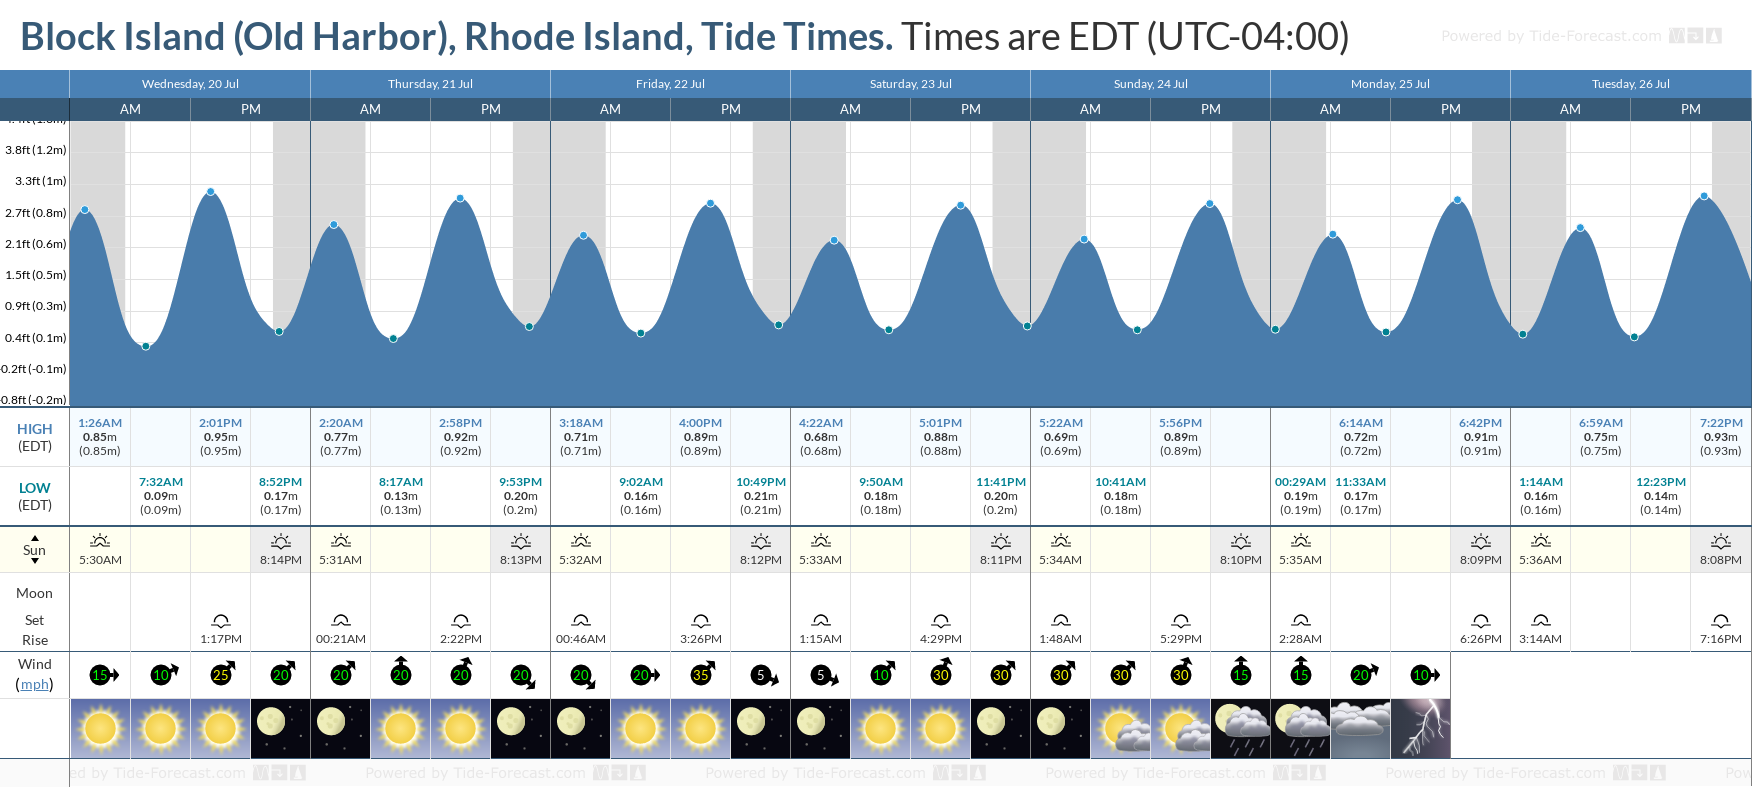 Block Island (Old Harbor), Rhode Island Tide Chart including high and low tide tide times for the next 7 days